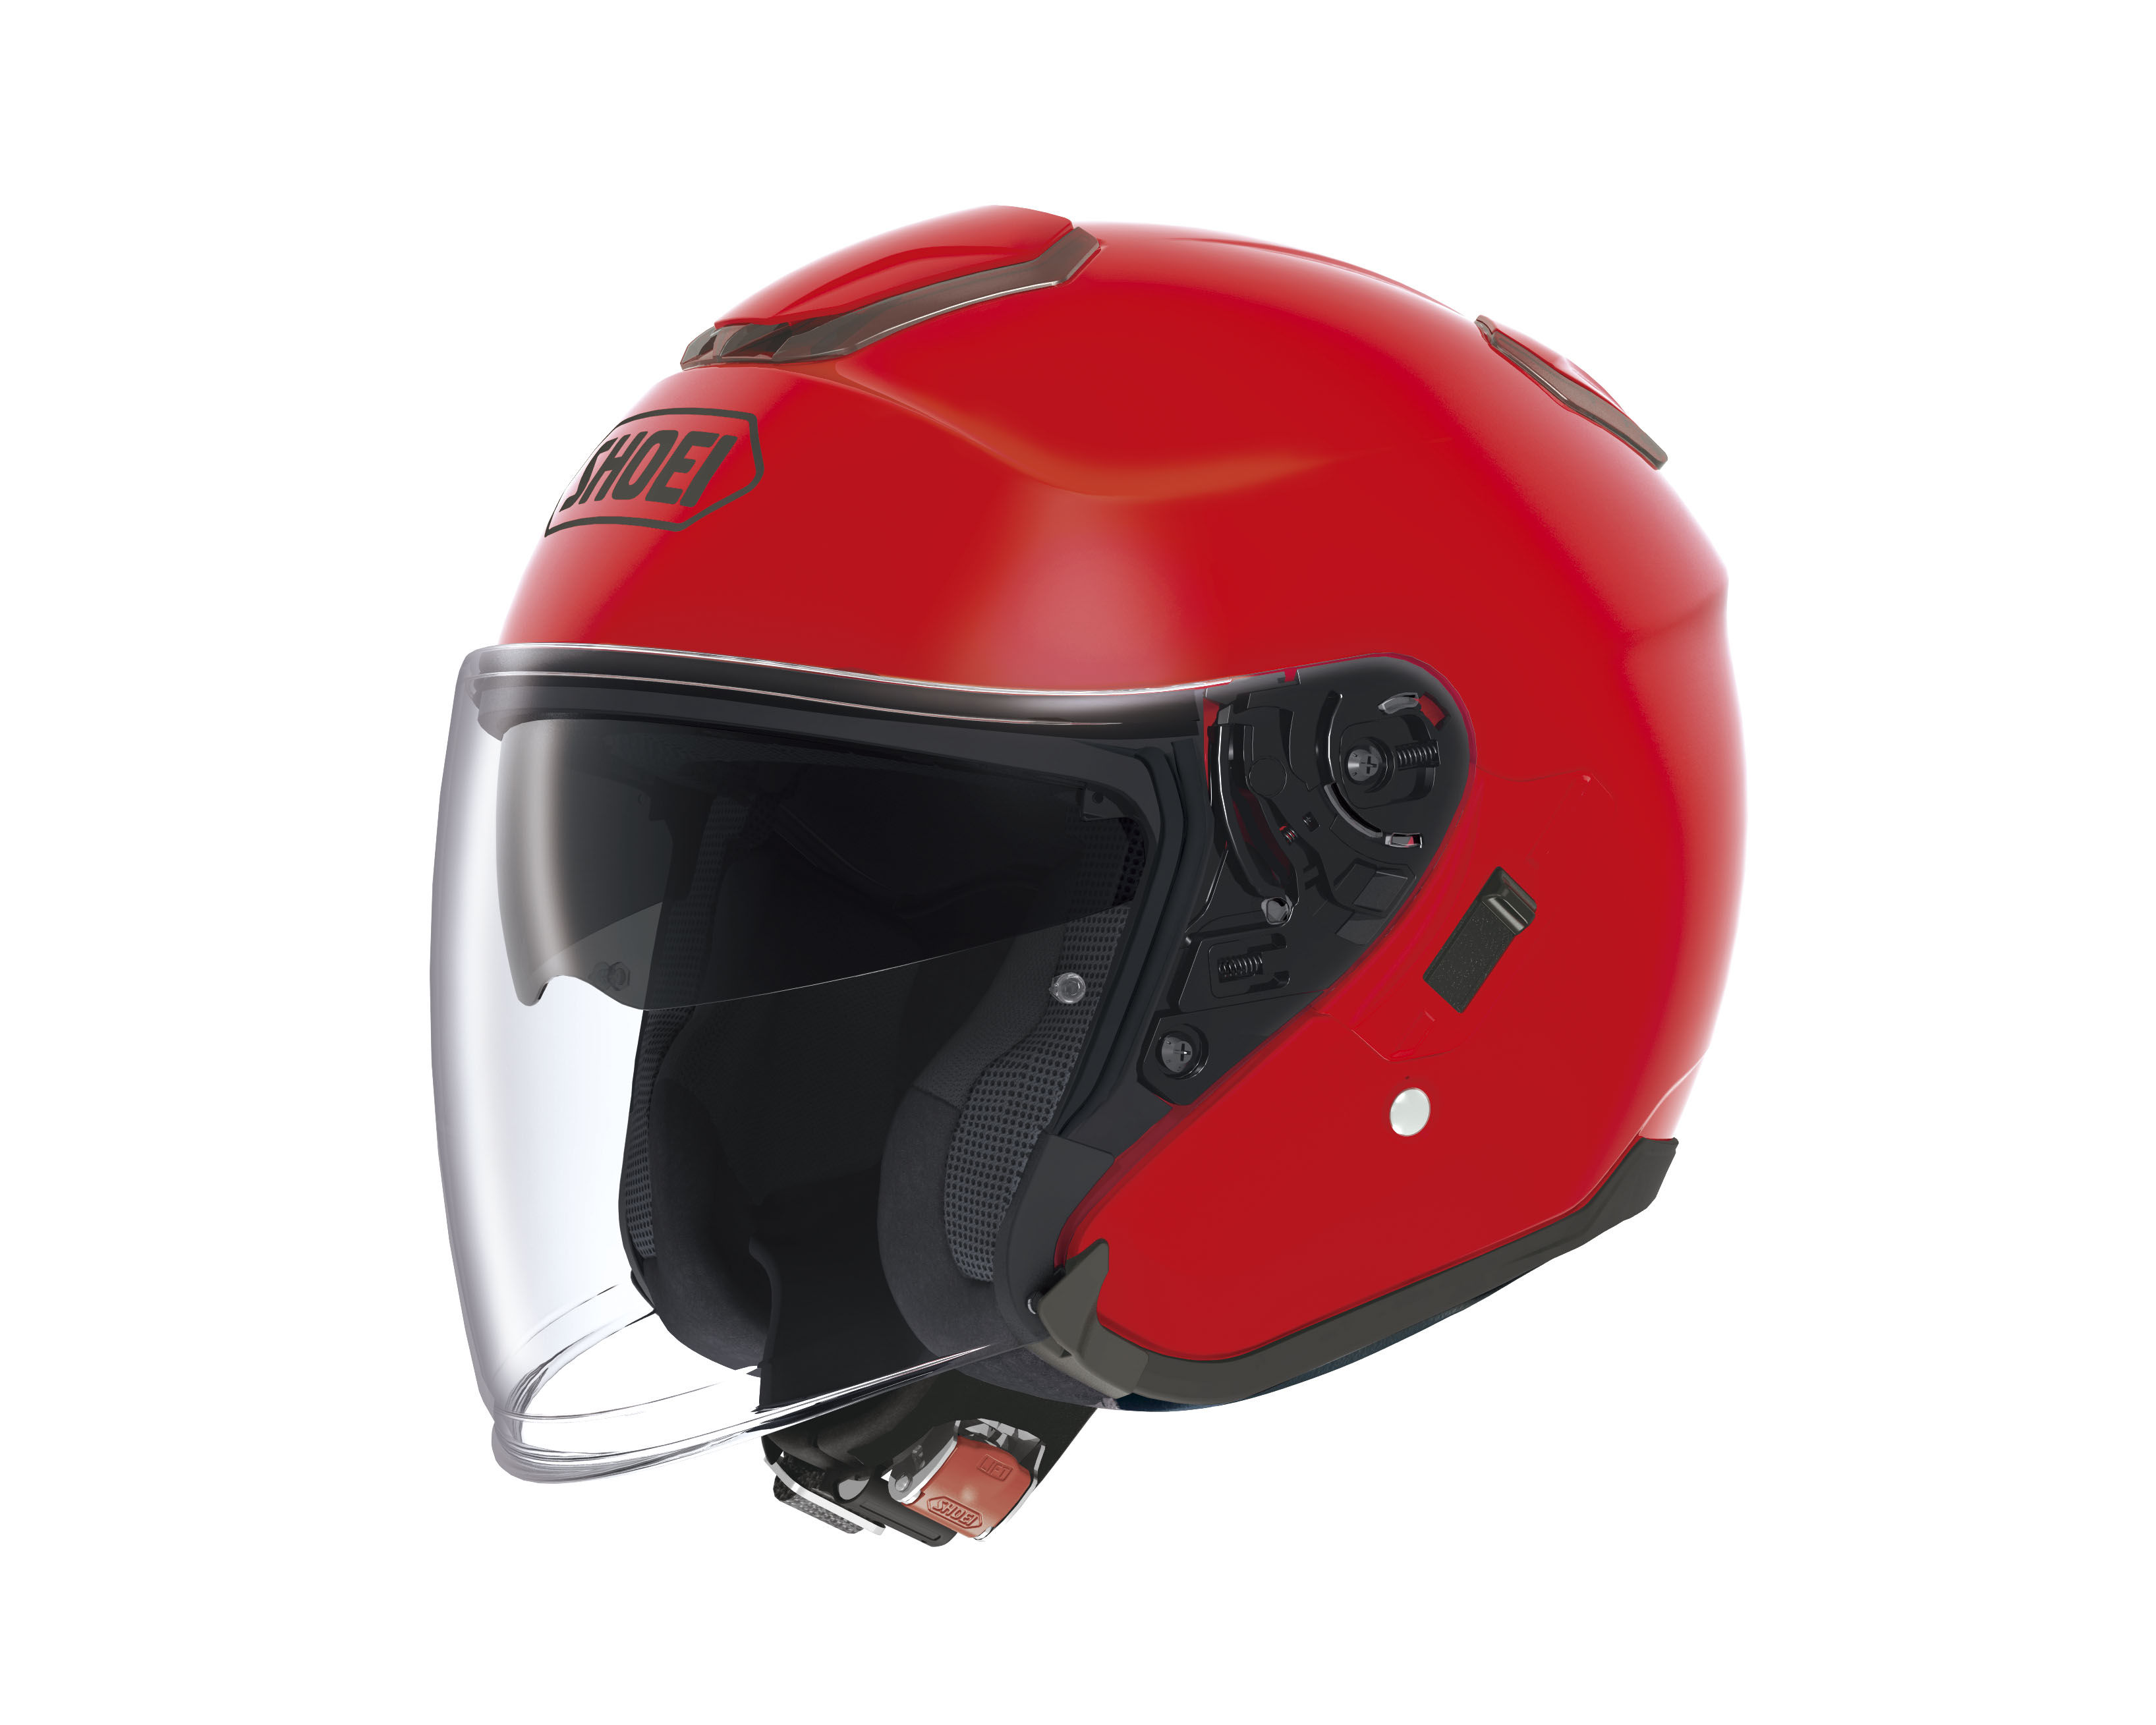 Casco Helmet Jet Shoei J-Cruise SHINE RED moto scooter